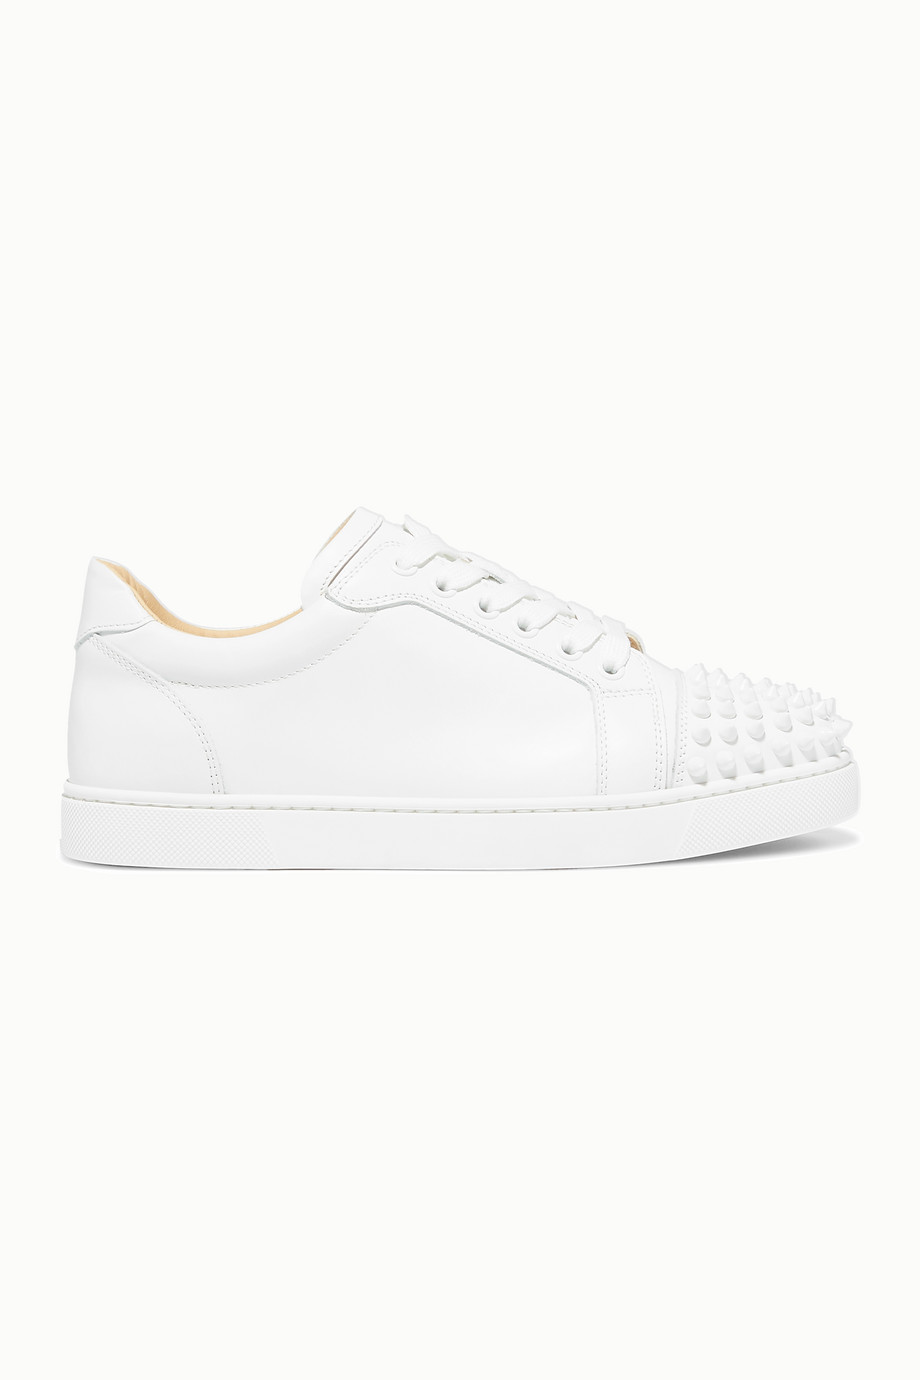 CHRISTIAN LOUBOUTIN Viera Spikes embellished leather sneakers